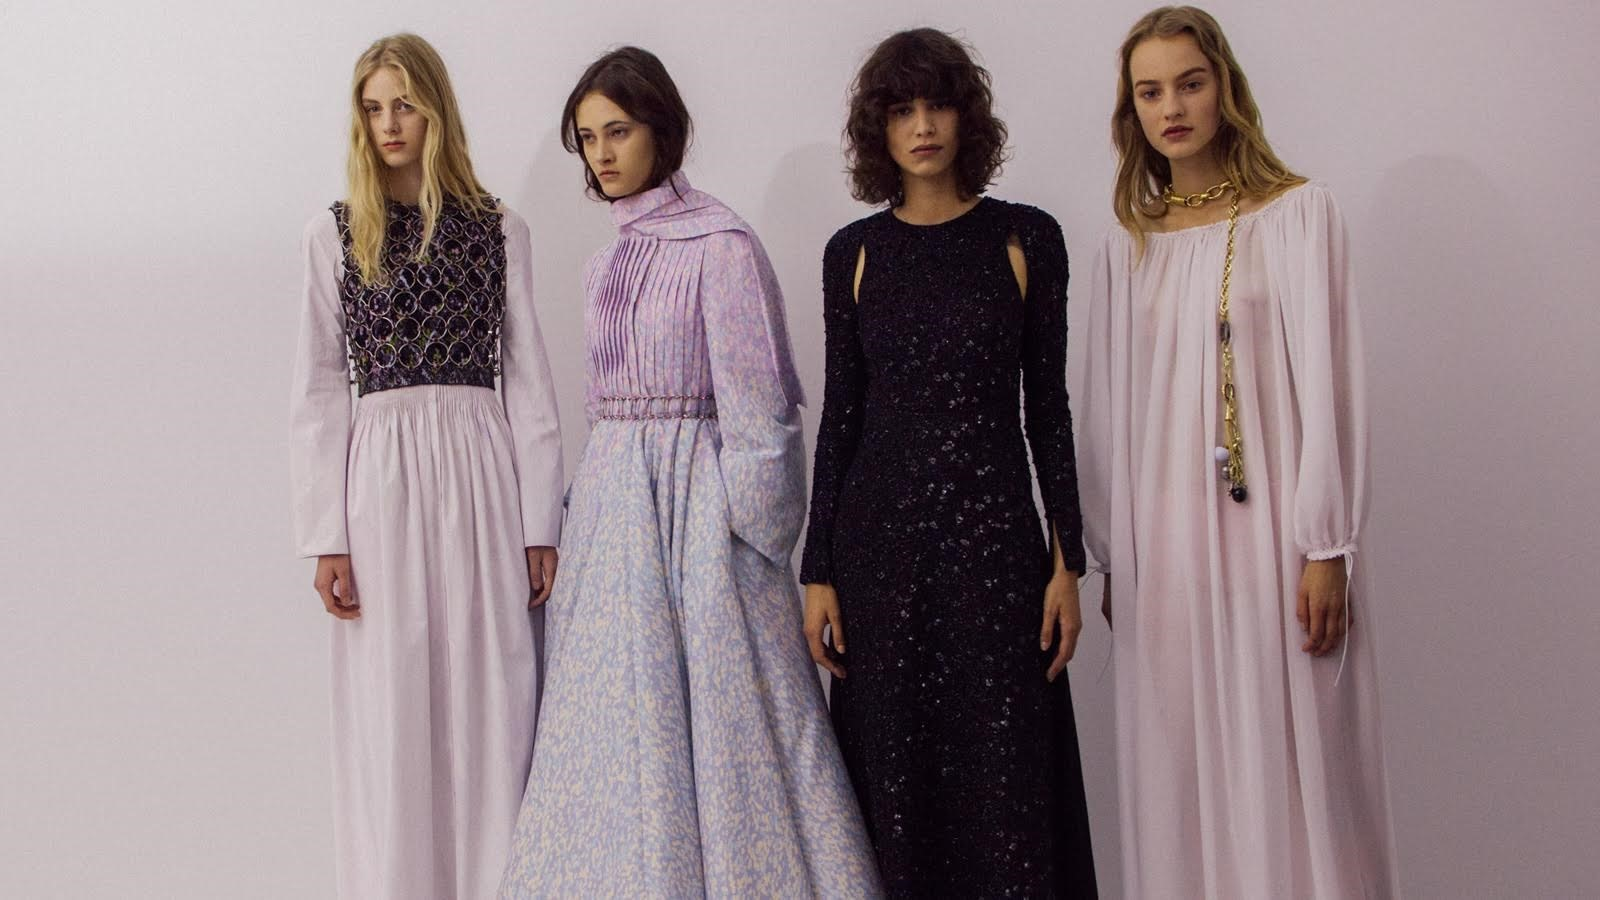 Backstage at Christian Dior Haute Couture AW15